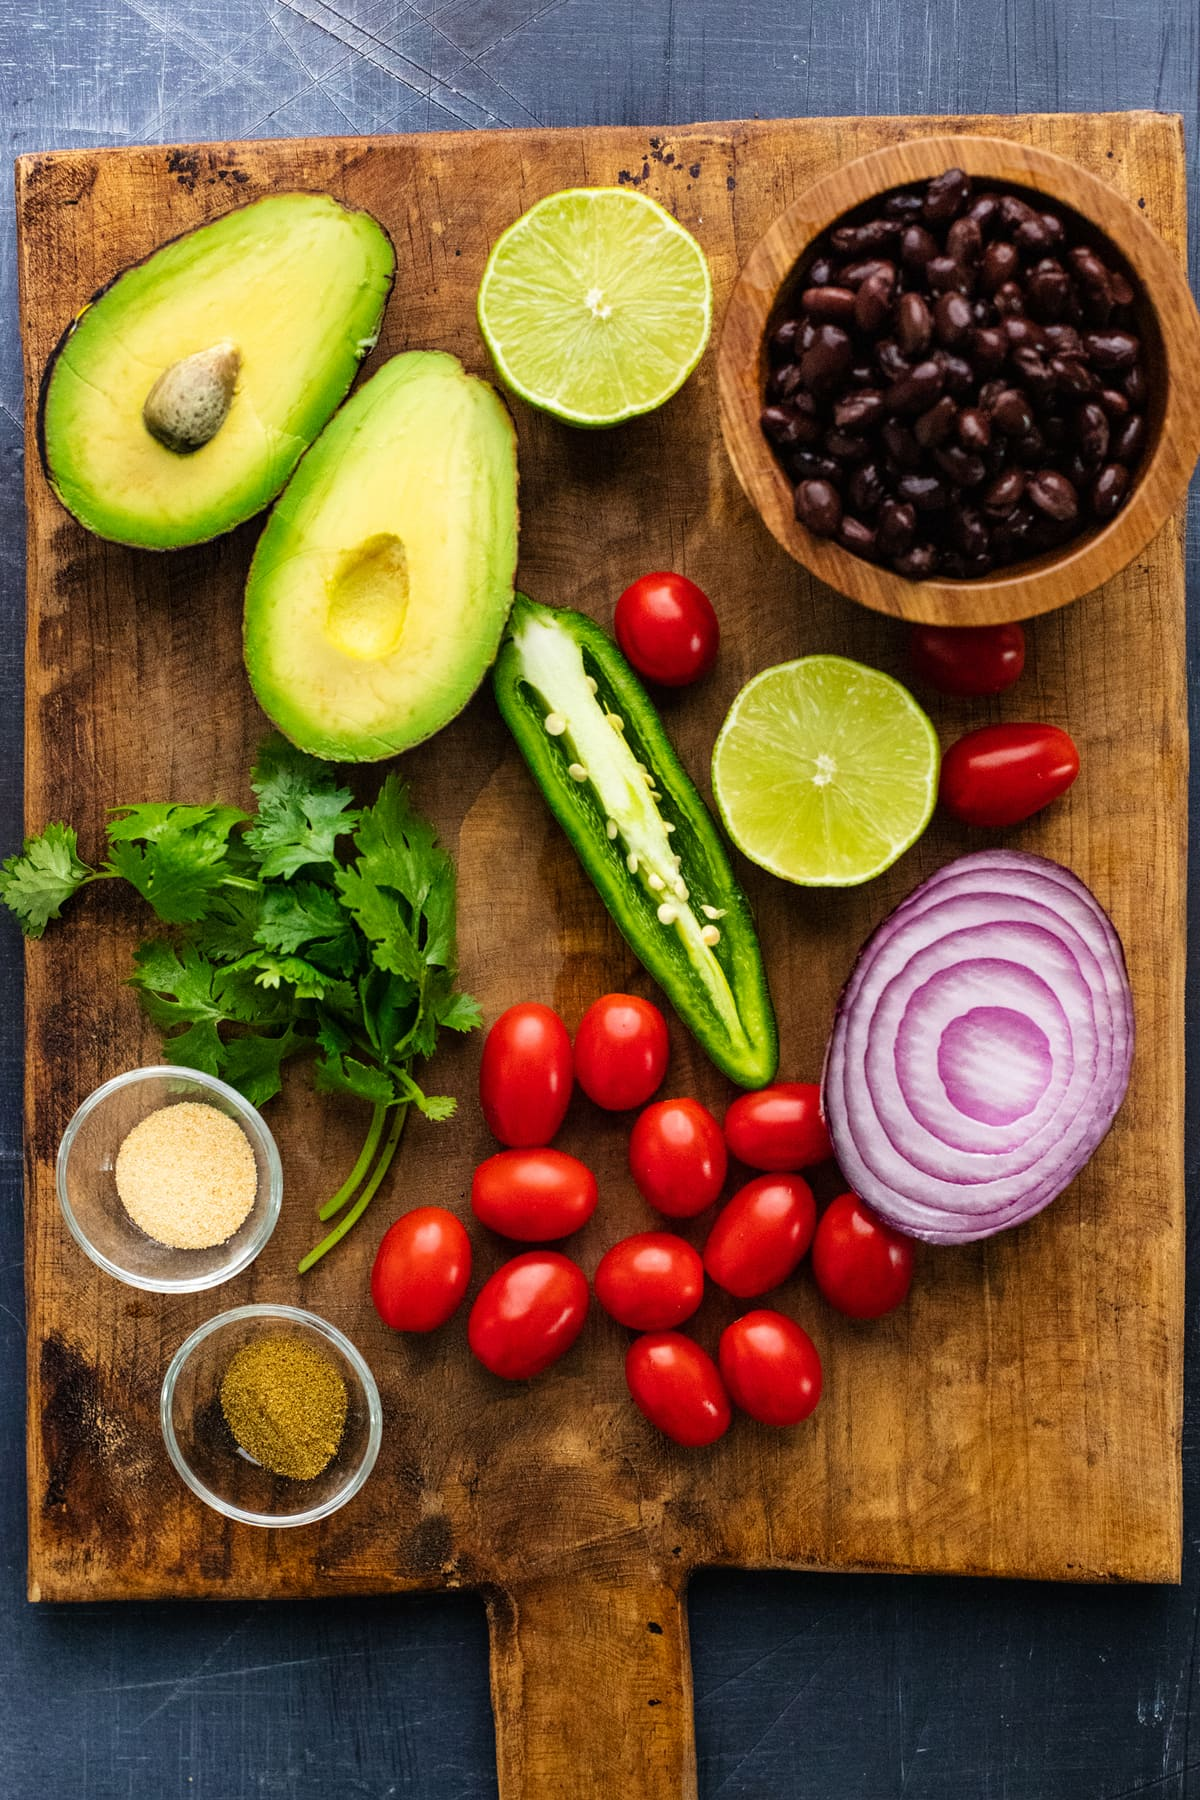 Ingredients for black bean salsa arranged on a brown wooden cutting board.